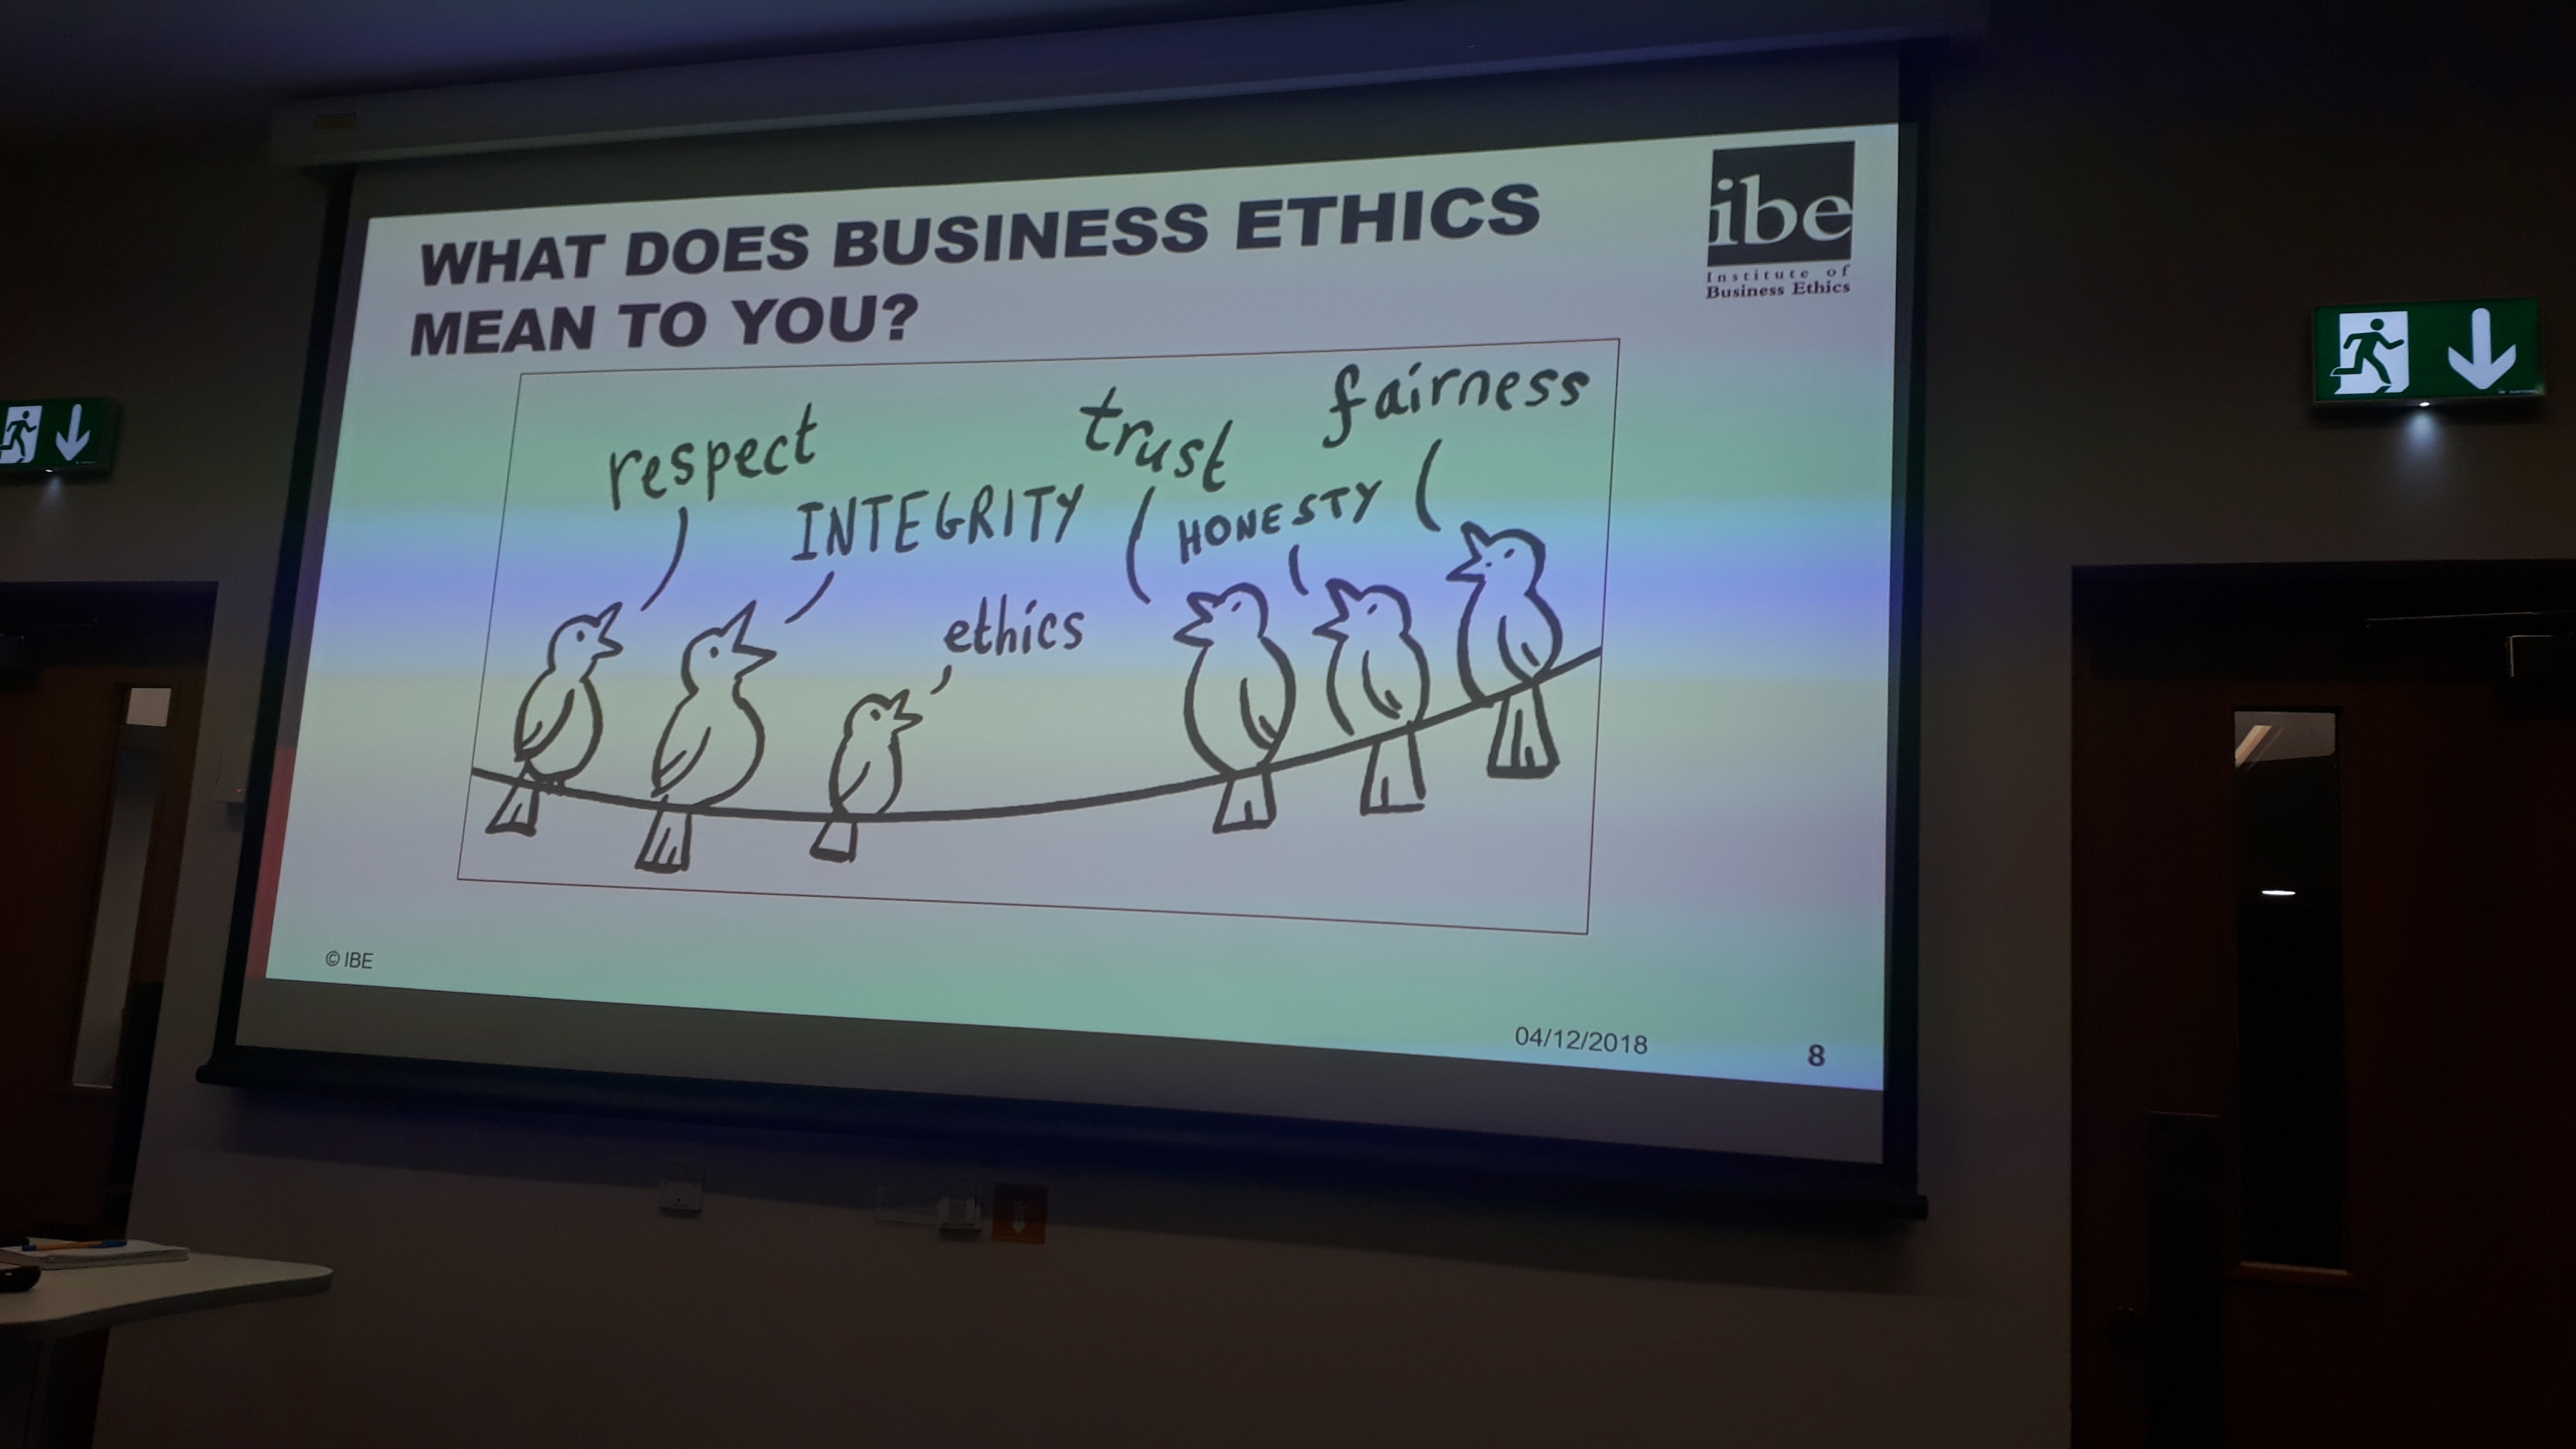 fairness and honesty in business ethics